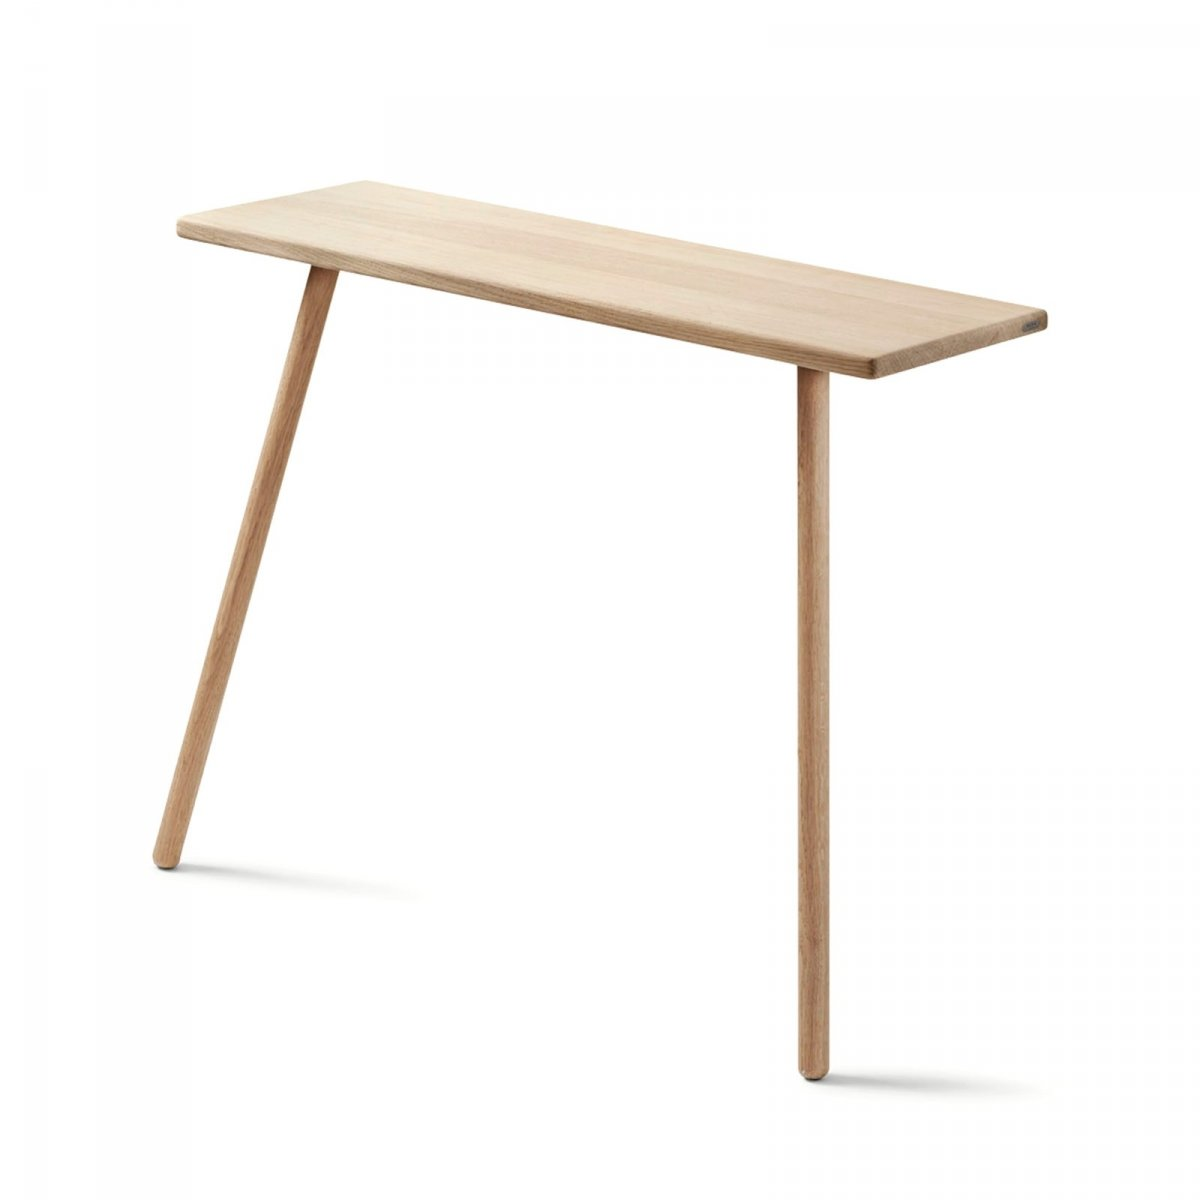 Georg Console Table, natural.